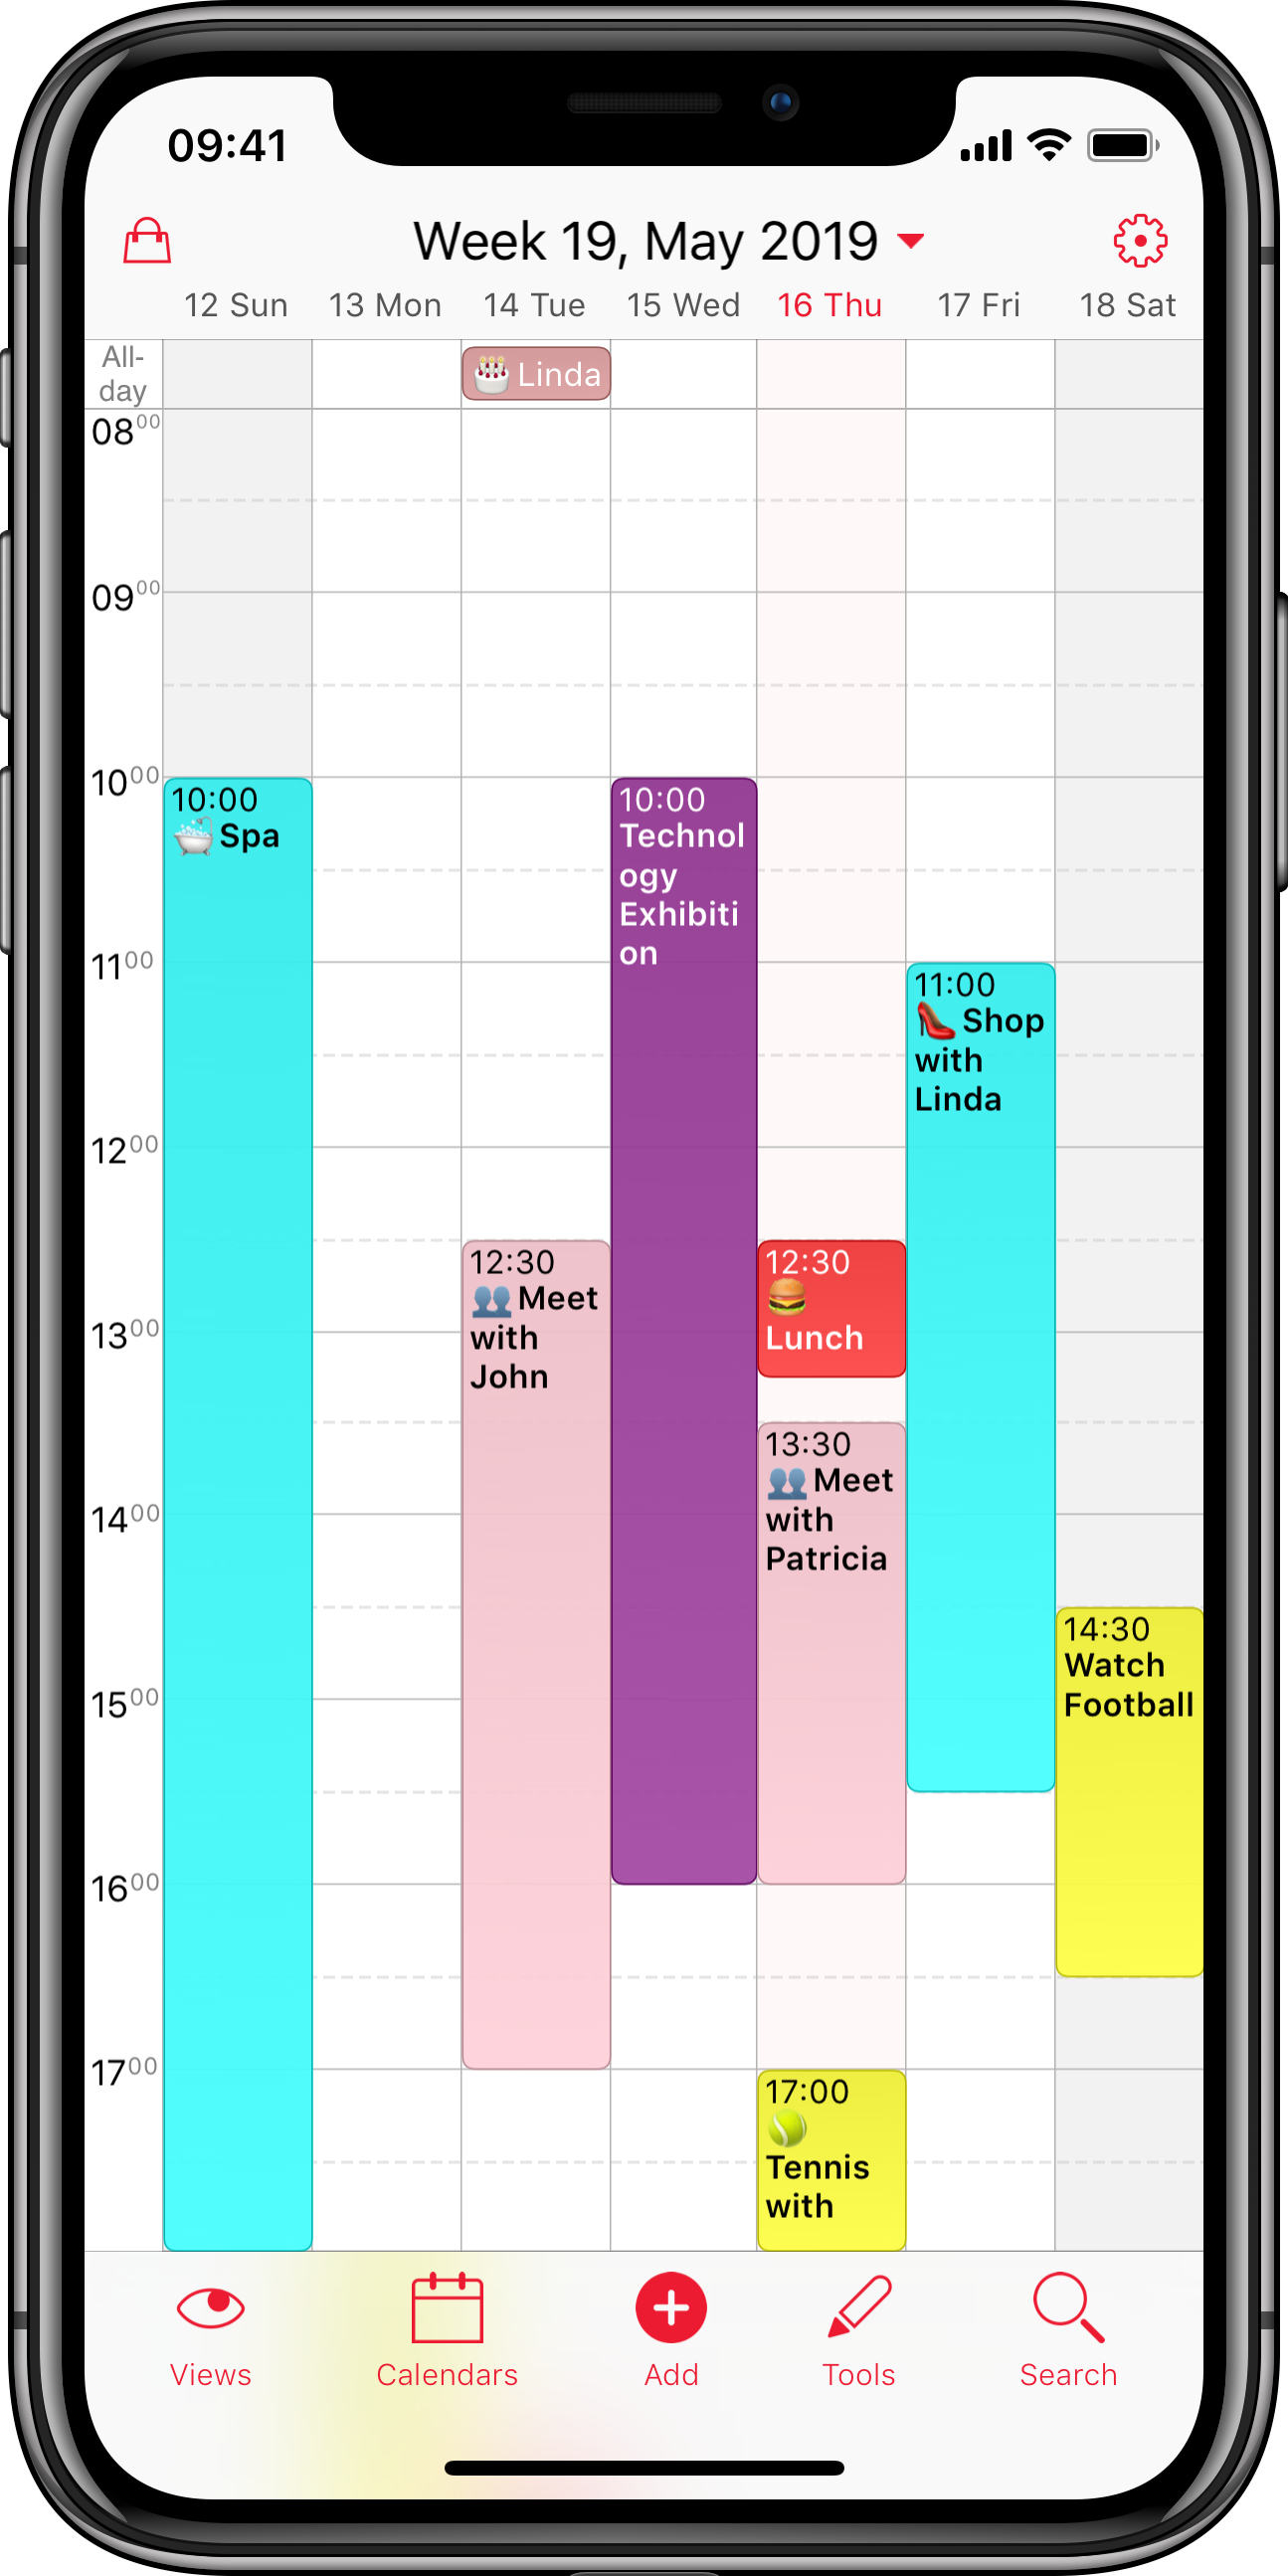 WeekCal | Most Powerful Calendar for iPhone & iPad